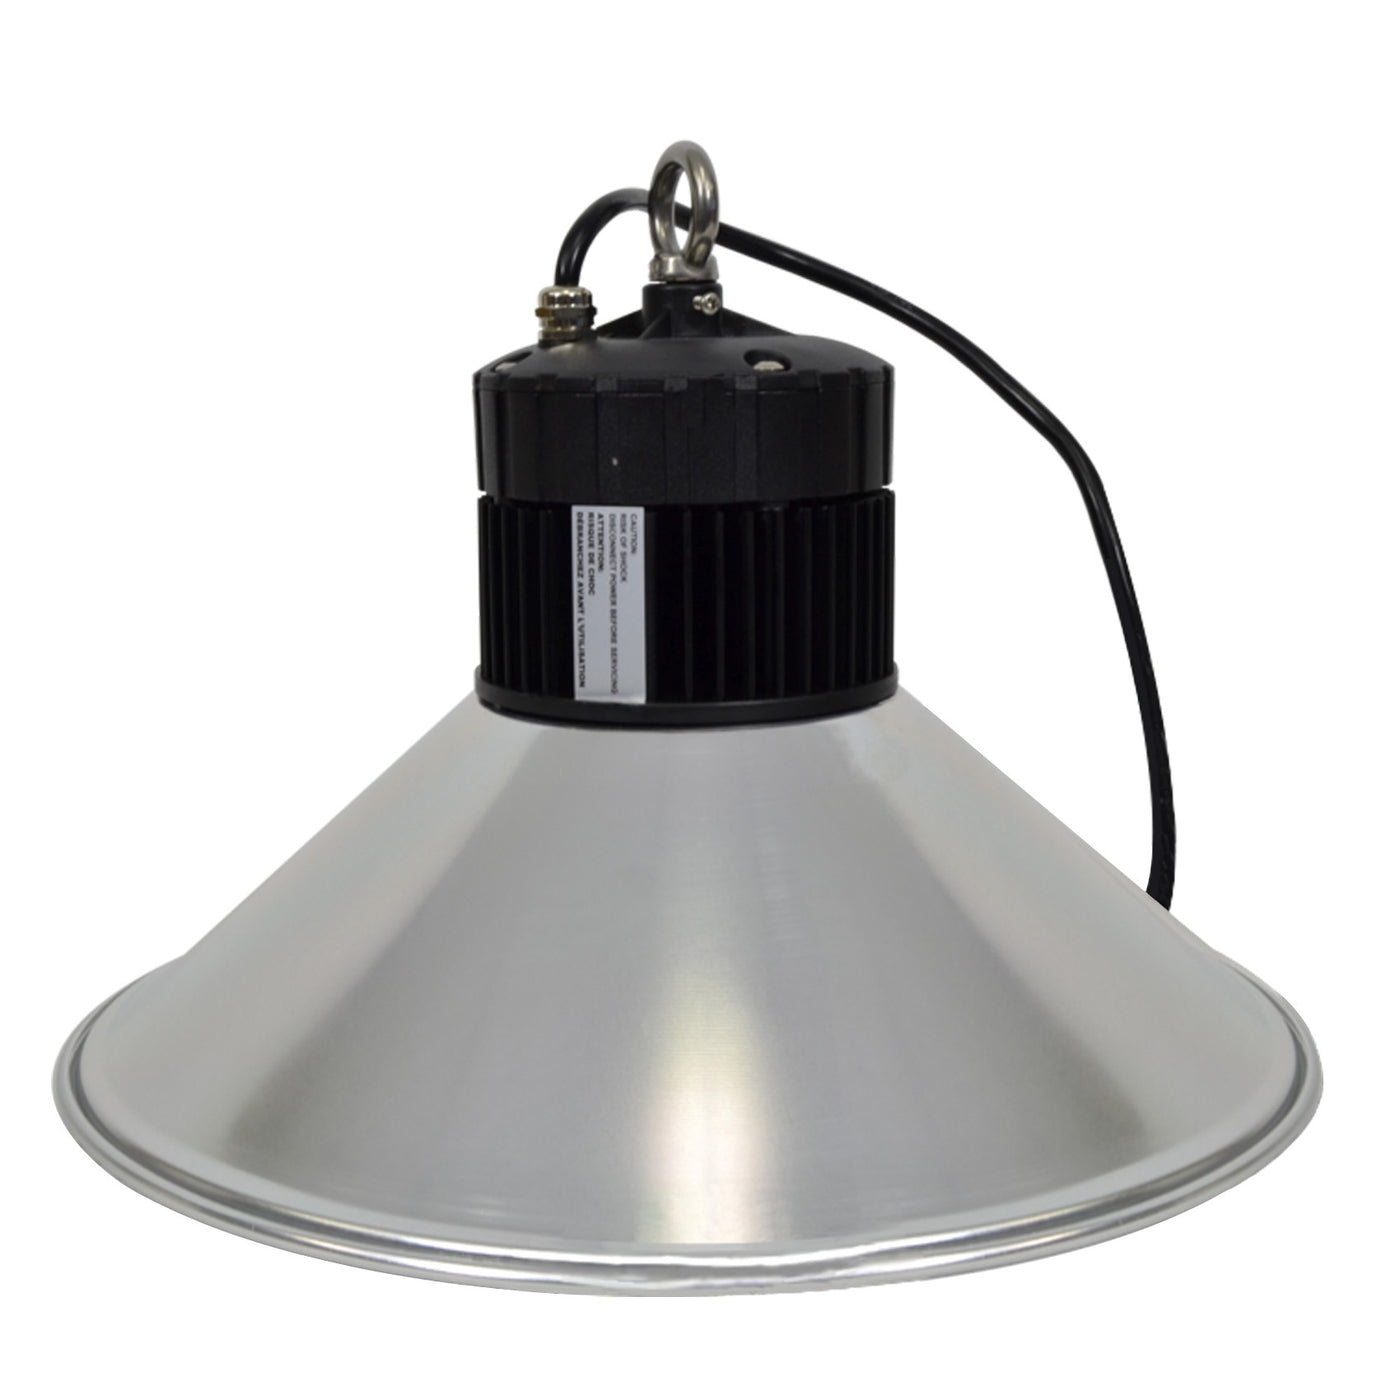 Low Bay Lights For Sale: Rebate Qualified High Bay Lights